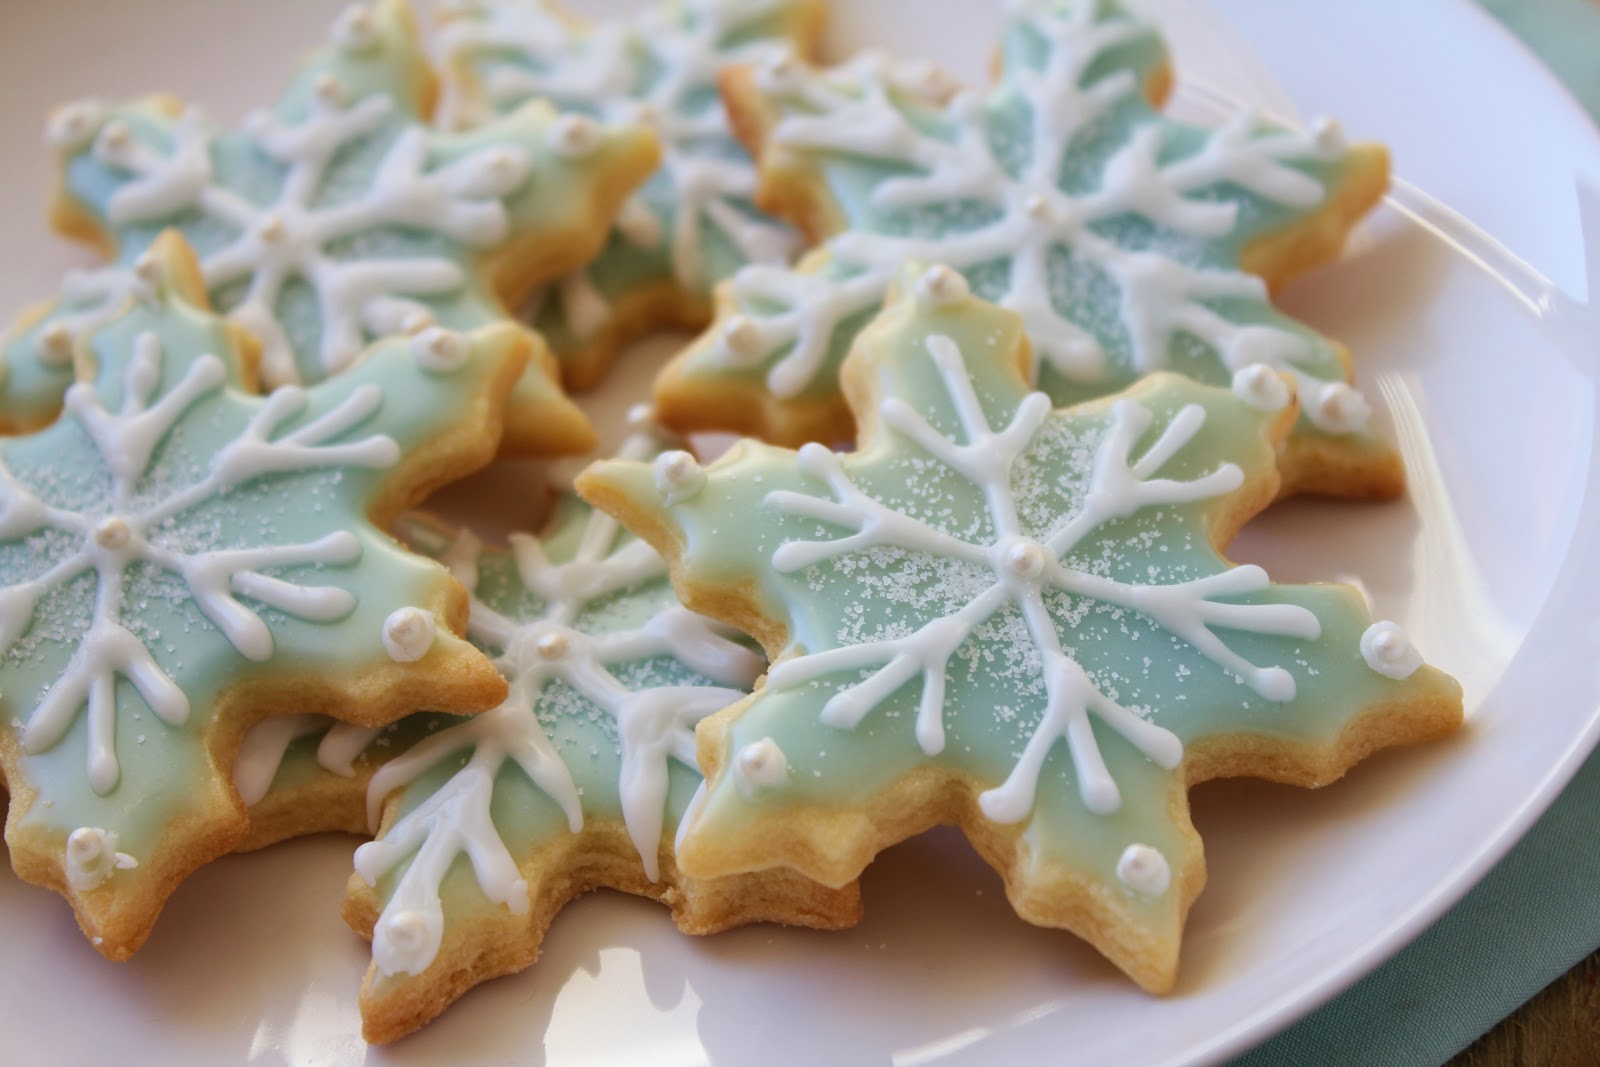 Snowflakes That Stay Delicious As It Looks